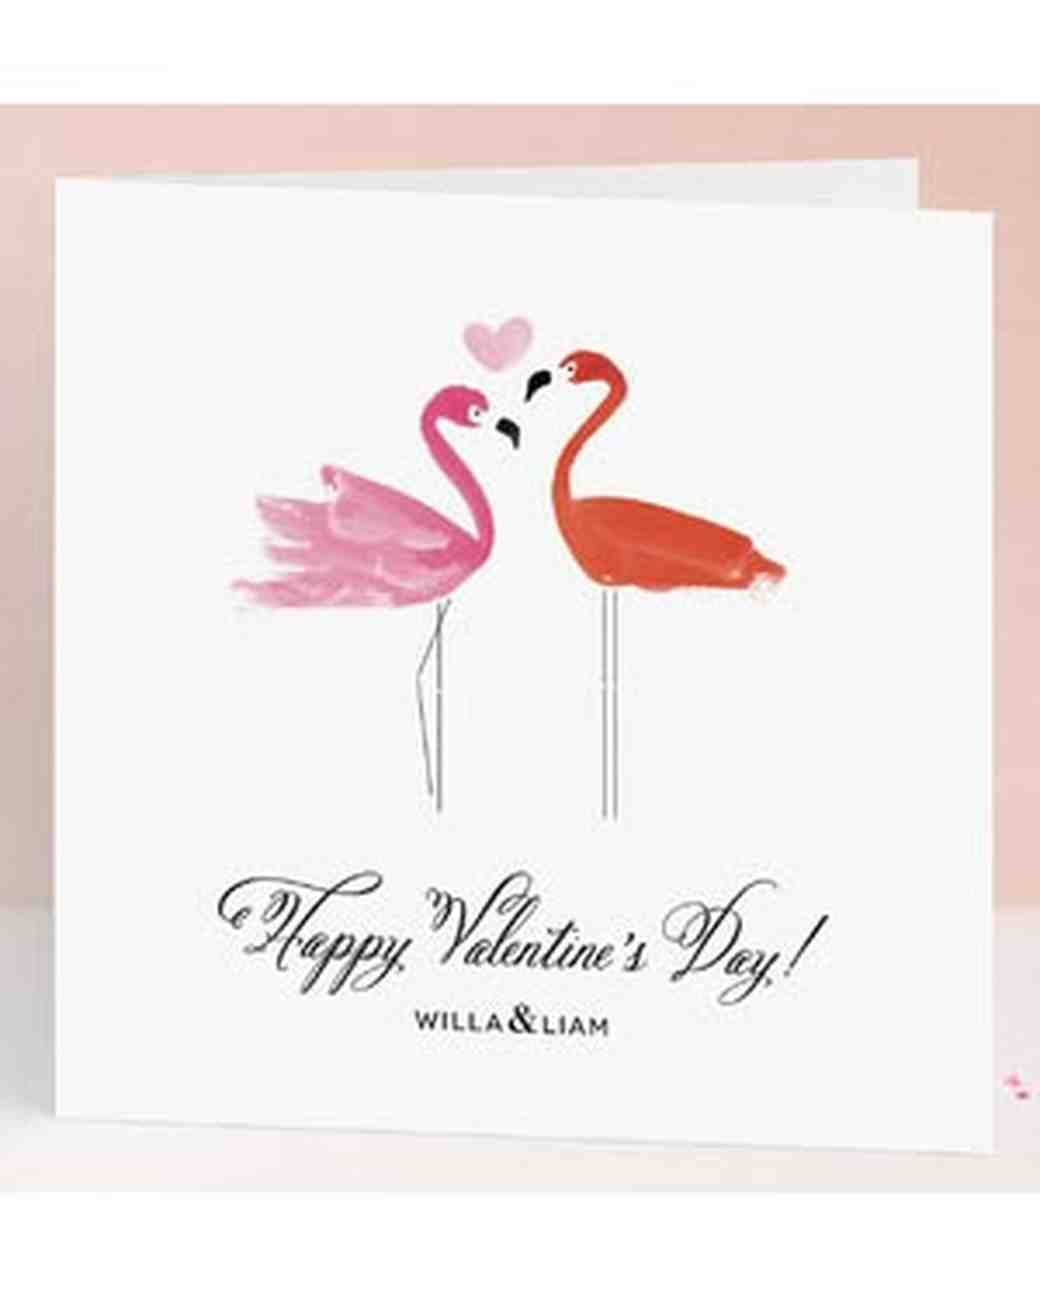 vday-cards-we-love-minted-swans-kissing-0216.jpg